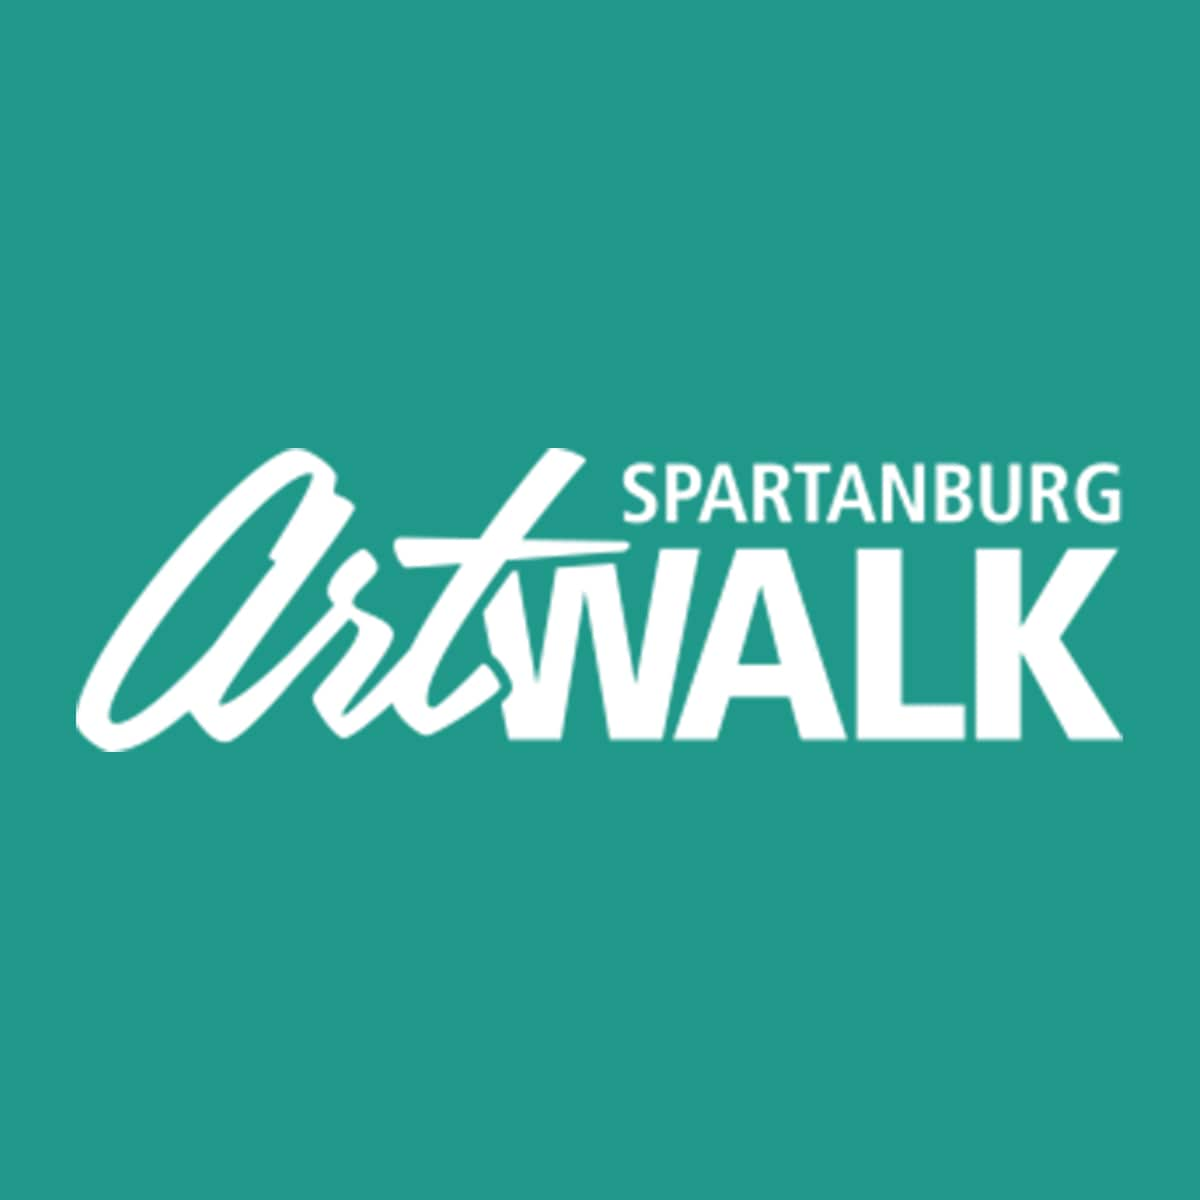 spartanburg artwalk logo